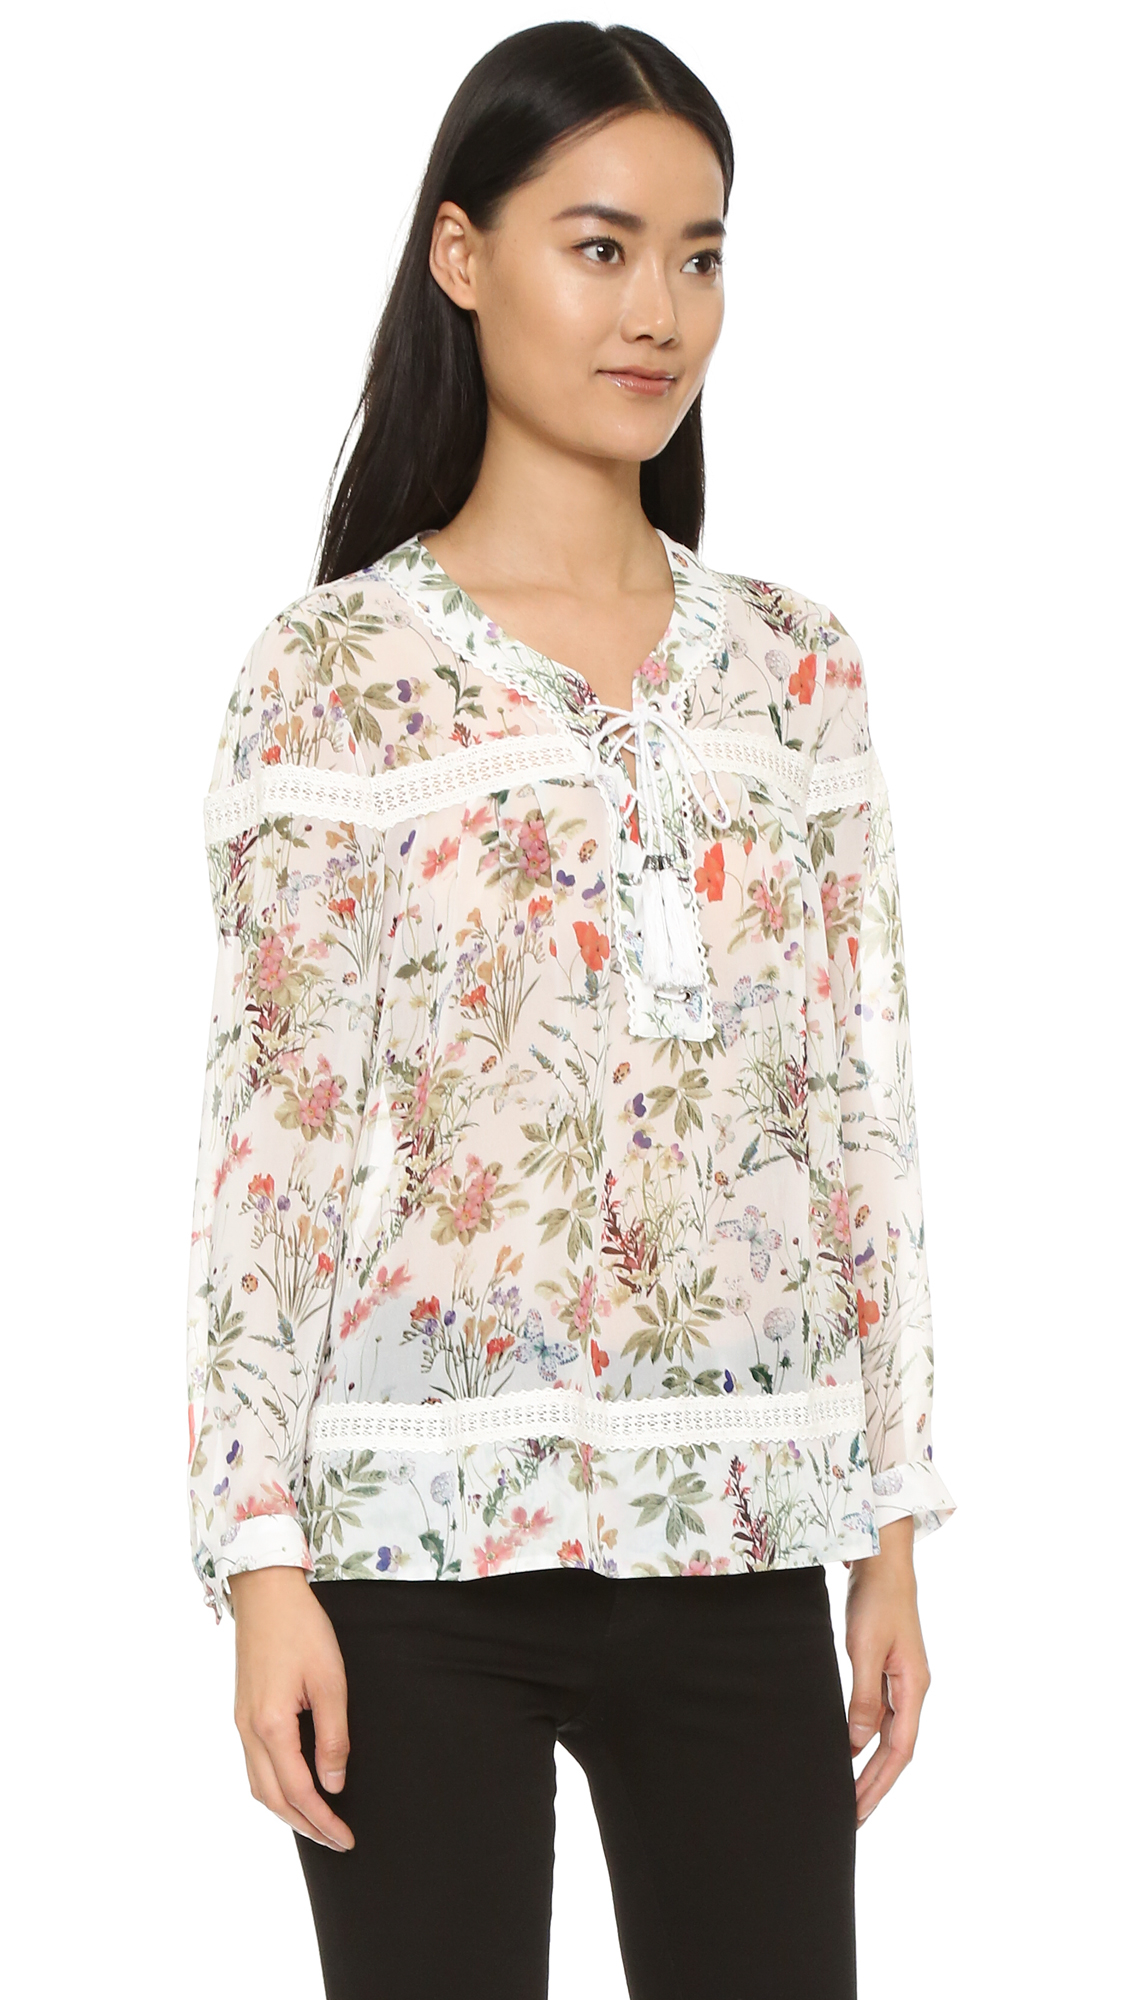 Botanic Soldes The Kooples Botanic Blouse In Natural Lyst